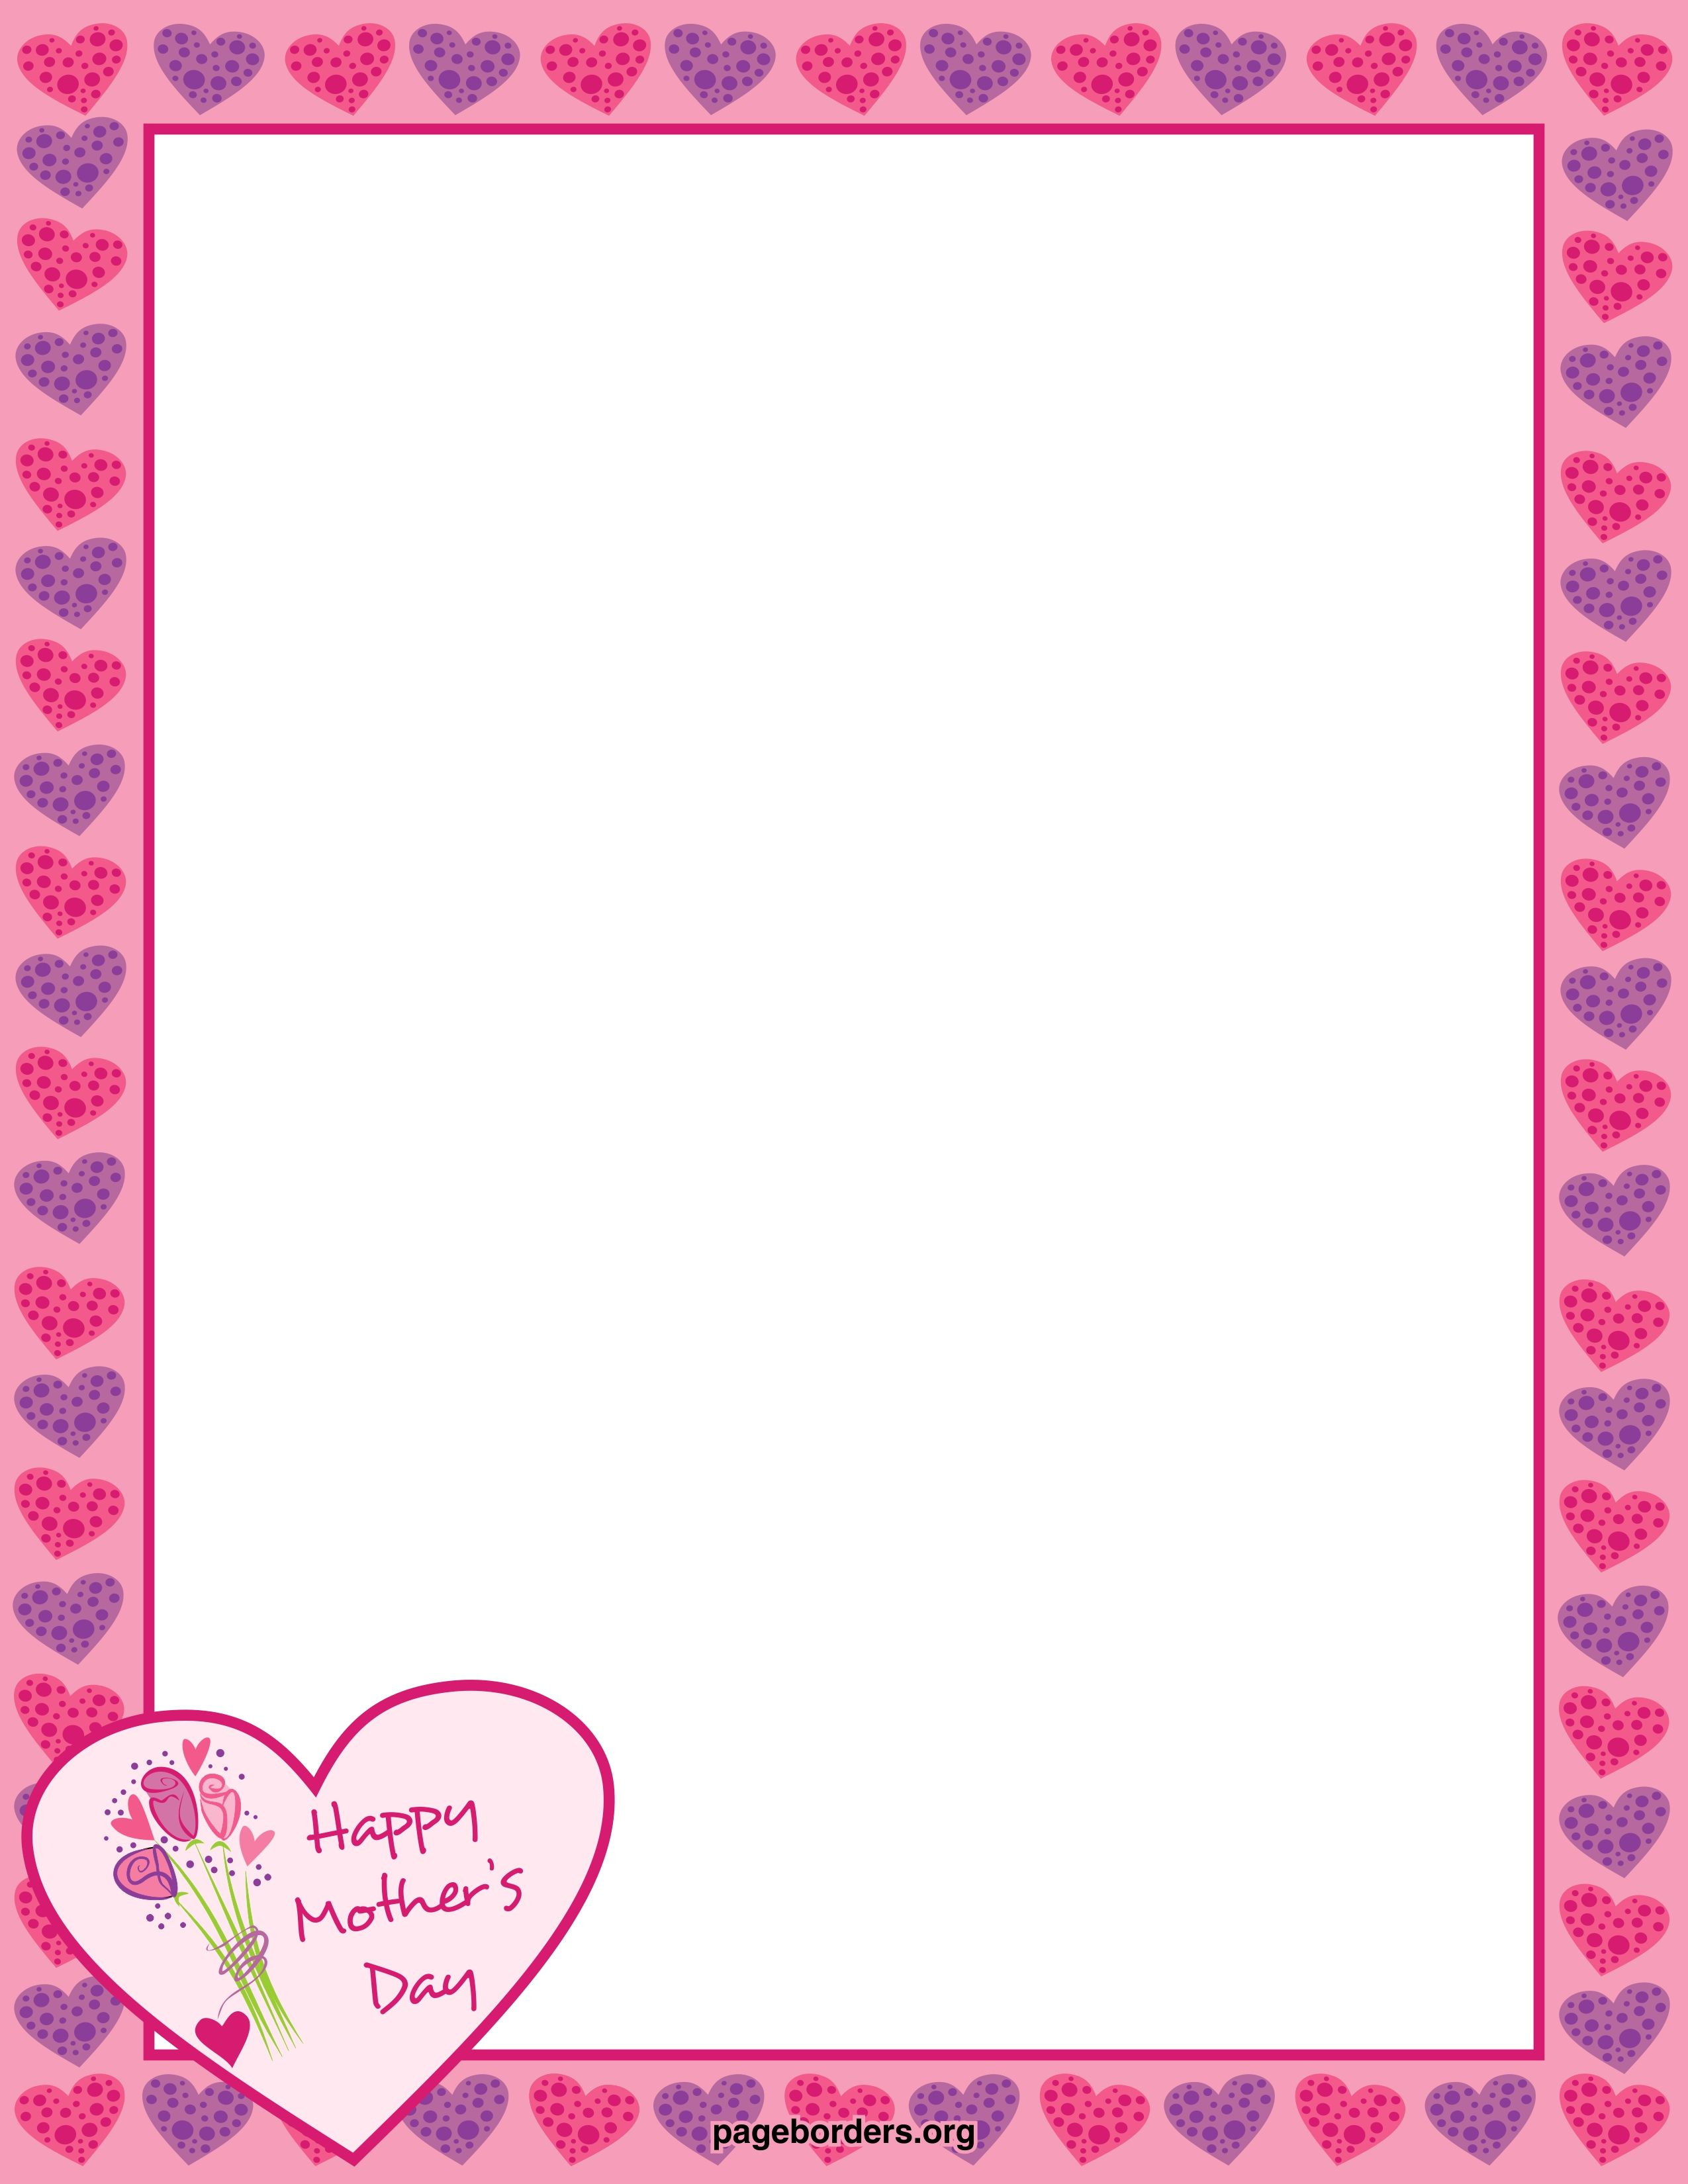 Mother\'s Day Borders | Free Mother\'s Day Border: AI, EPS, GIF, JPG ...